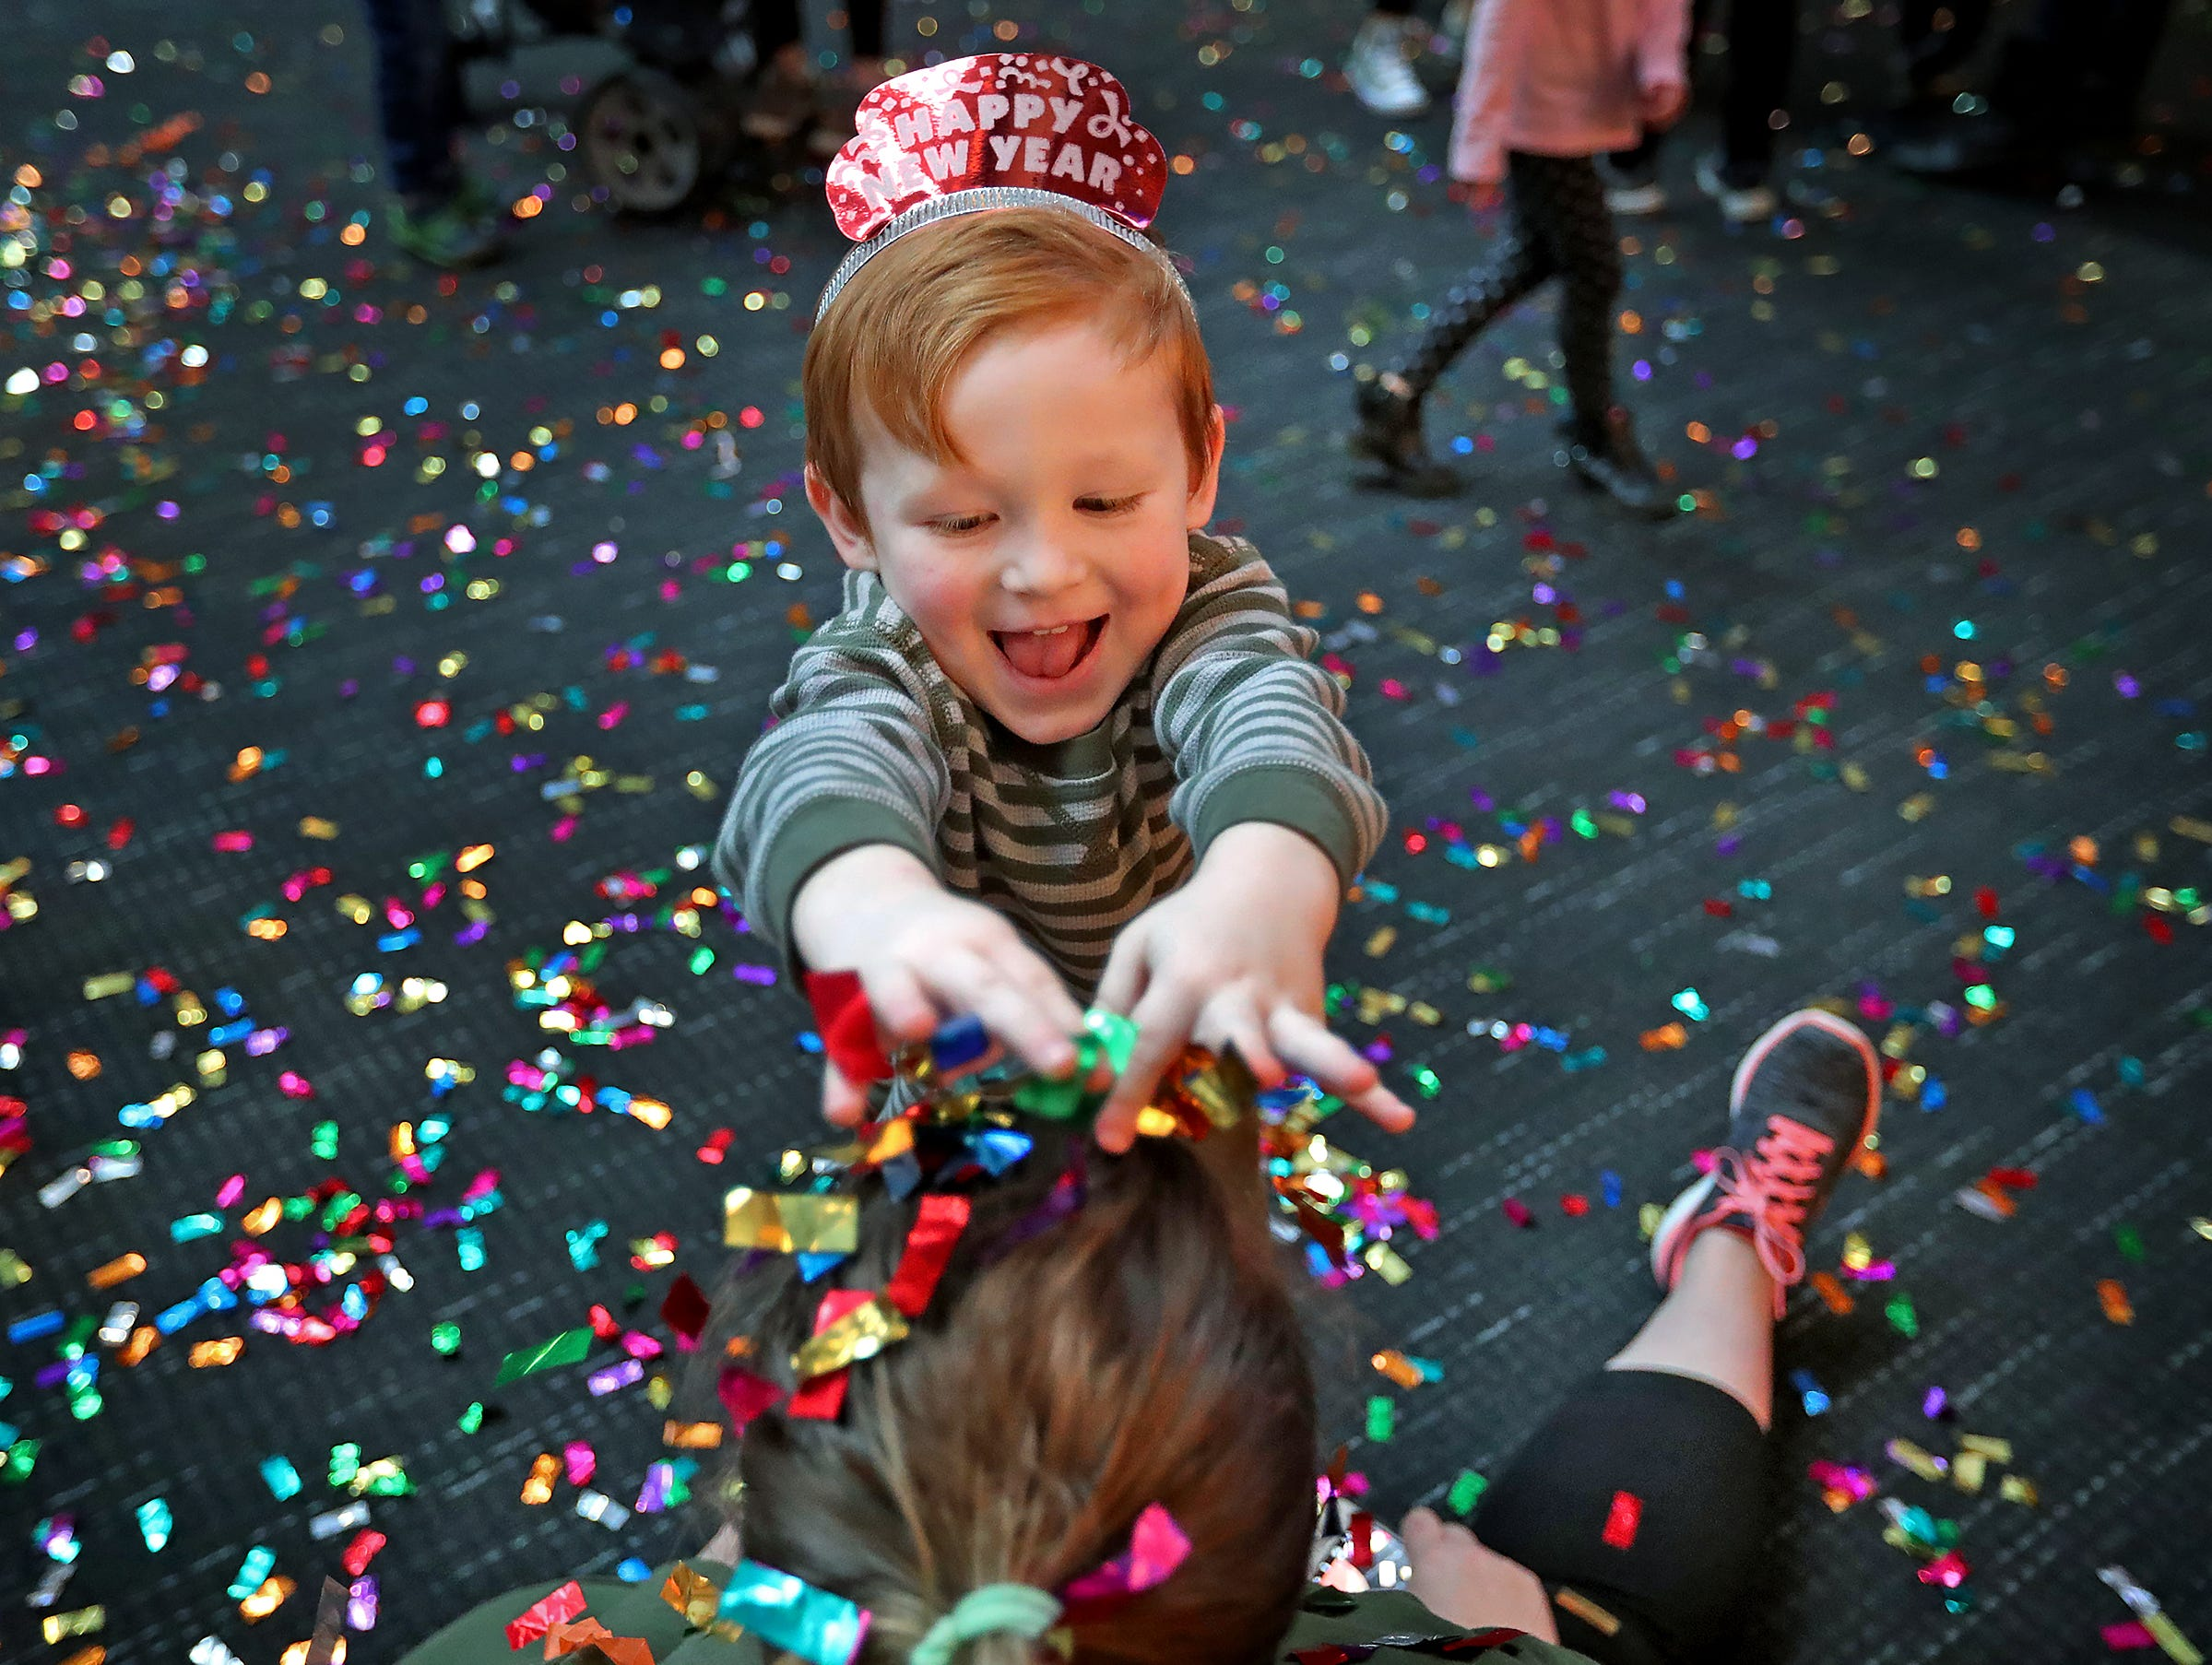 Aaron Lenon puts confetti in his mom, Mindy Beigle's hair, at the Countdown to noon celebration at the Children's Museum of Indianapolis, Monday, Dec. 31, 2018.